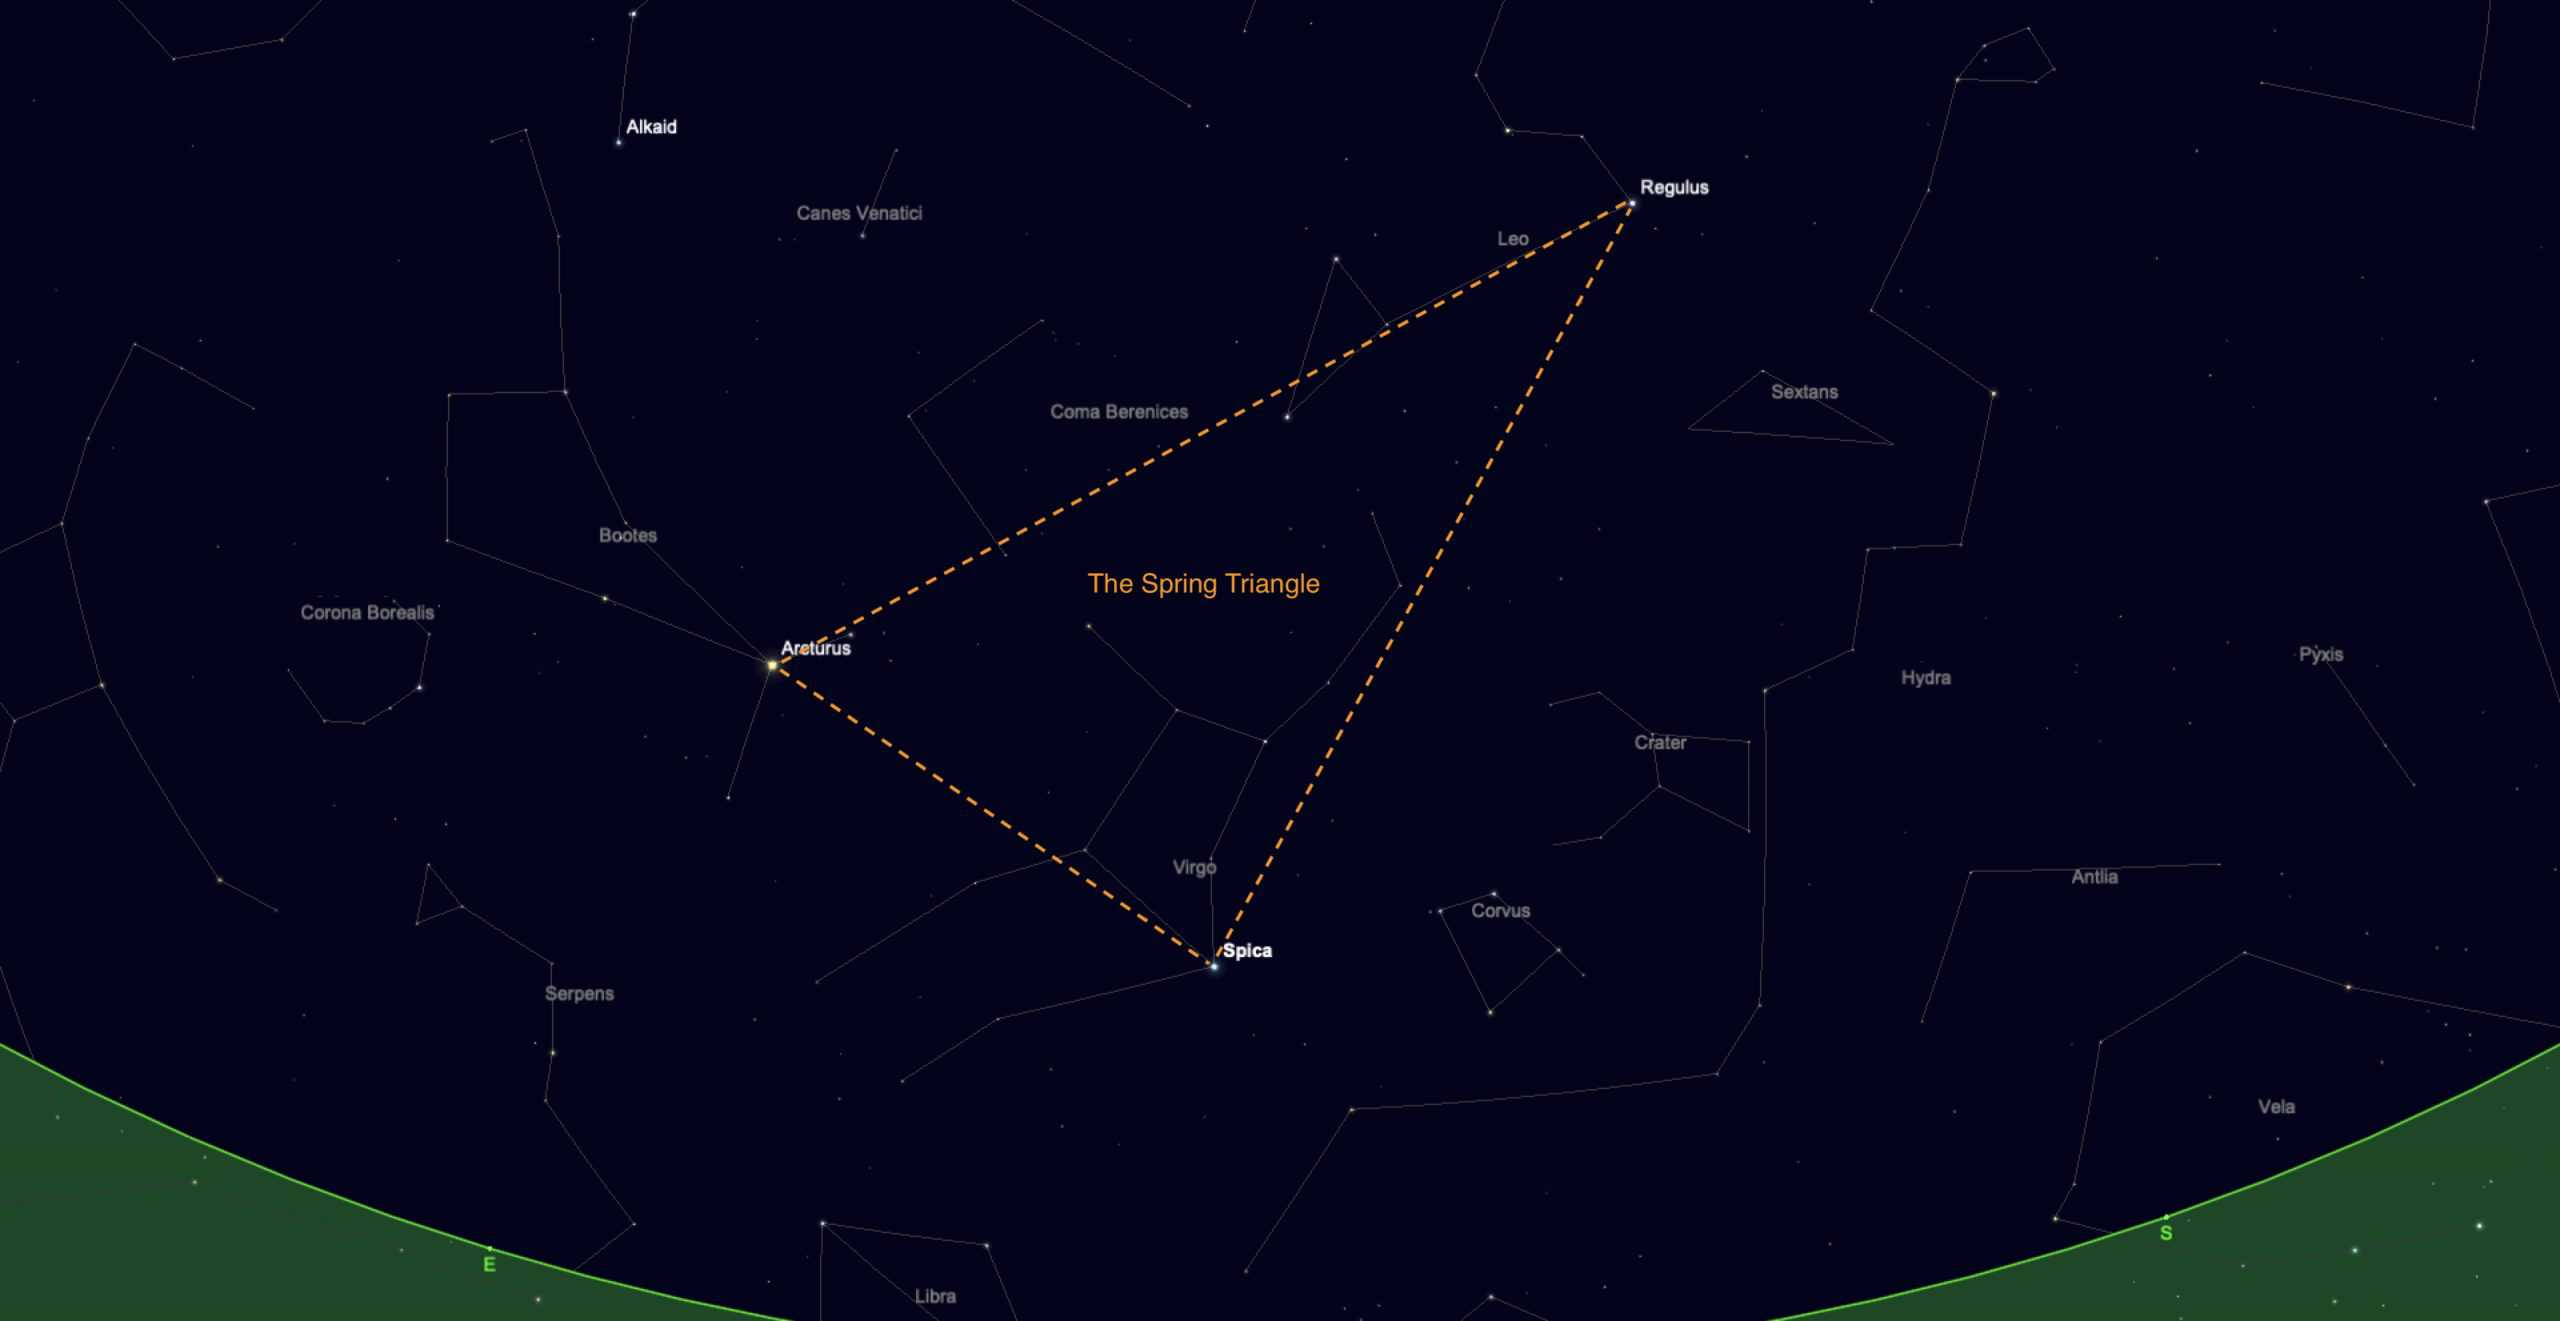 The spring triangle asterism with Spica in one corner